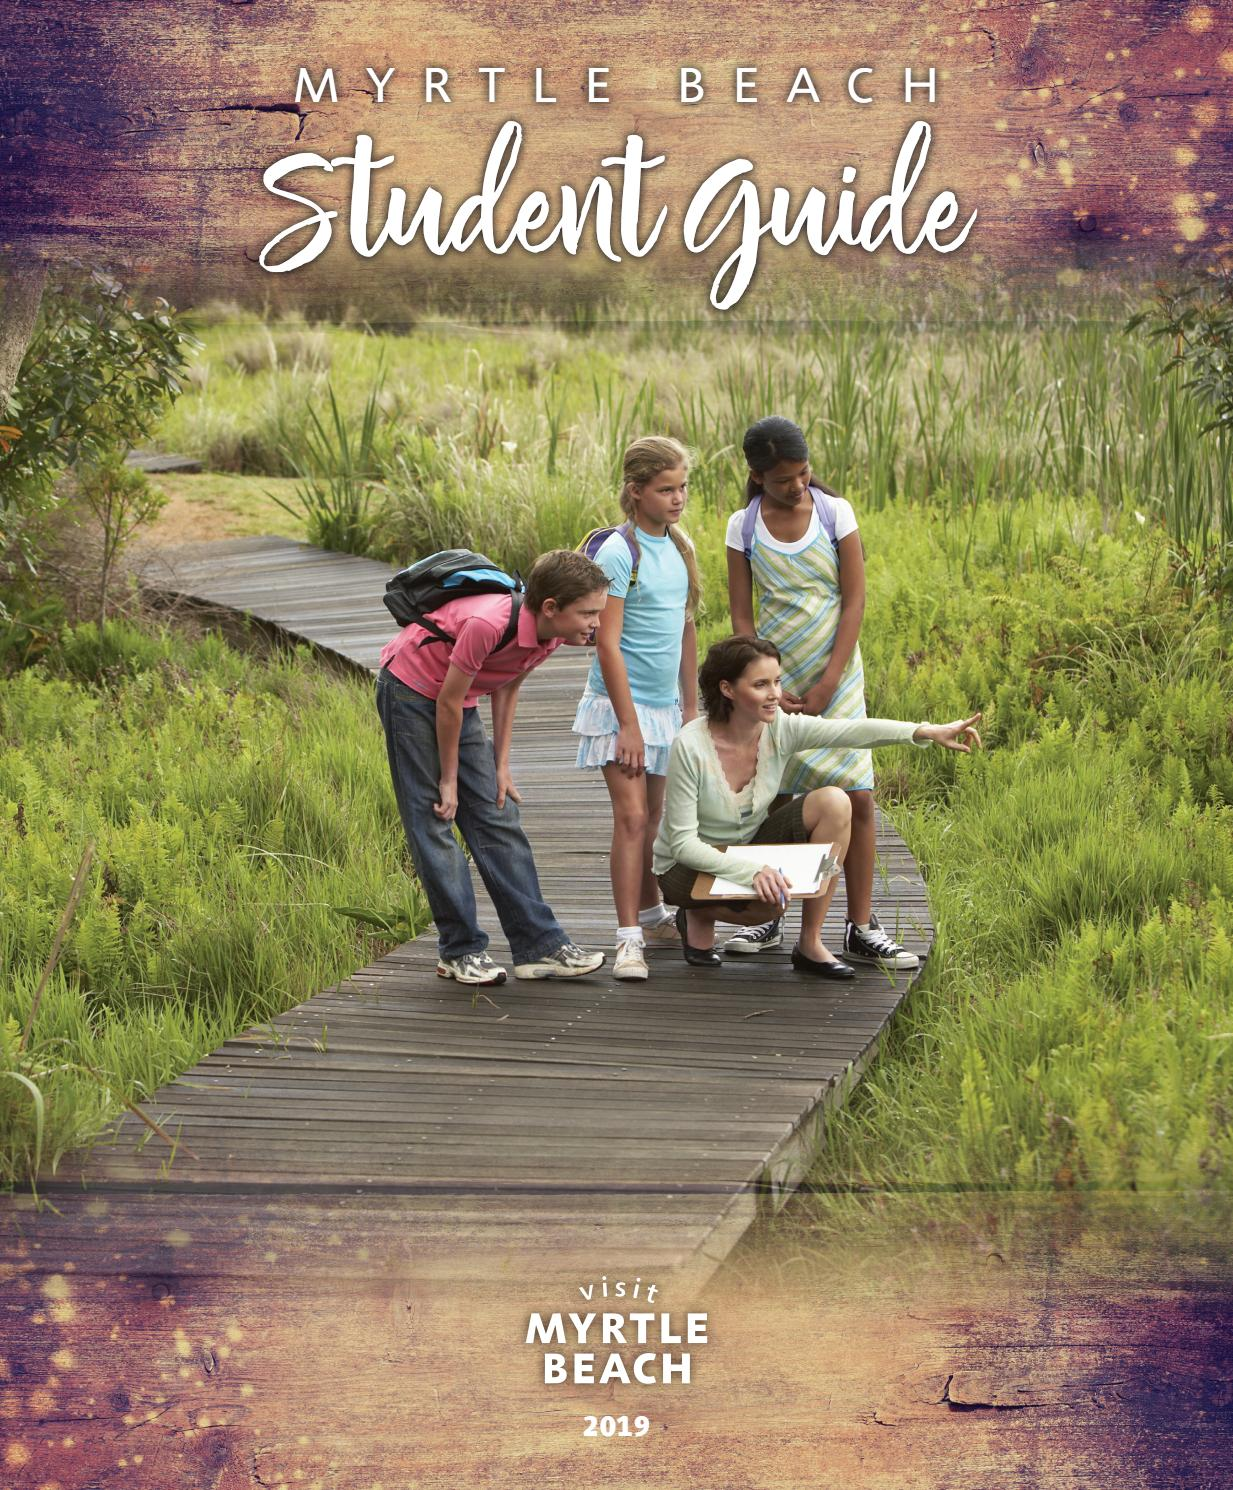 Myrtle Beach Student Guide 2019 by The Group Travel Leader